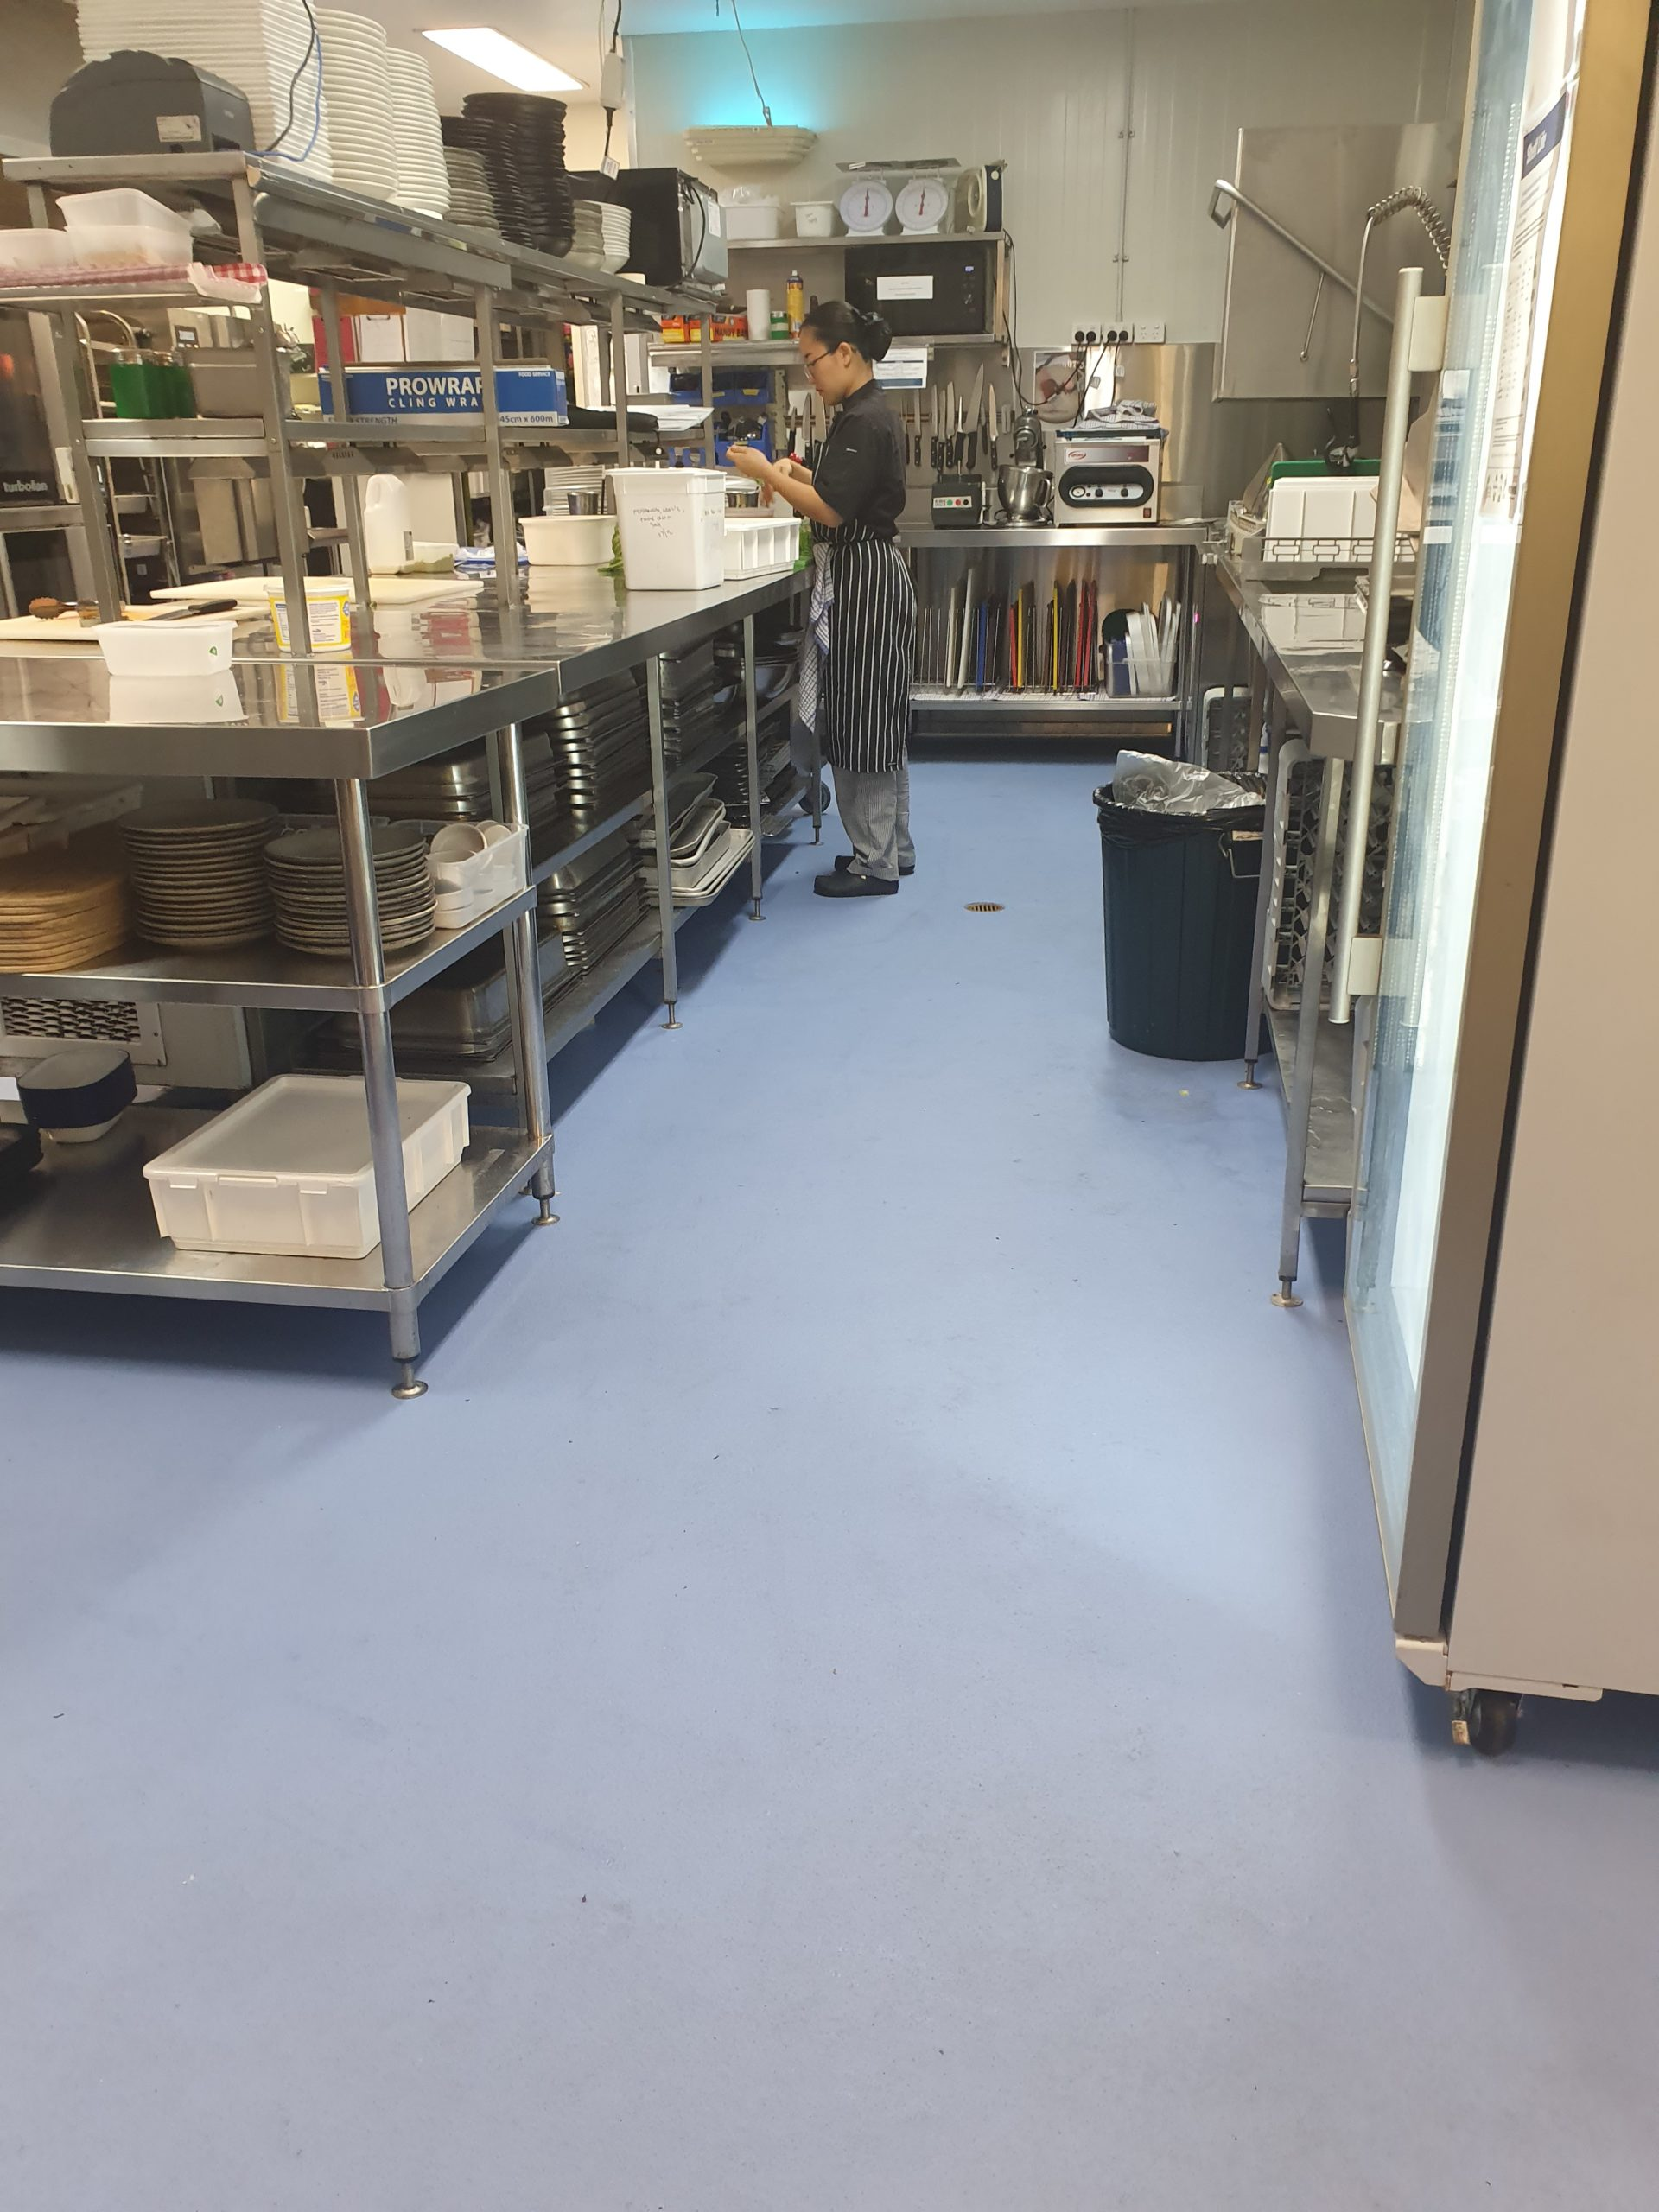 commercial kitchen with a women in the background